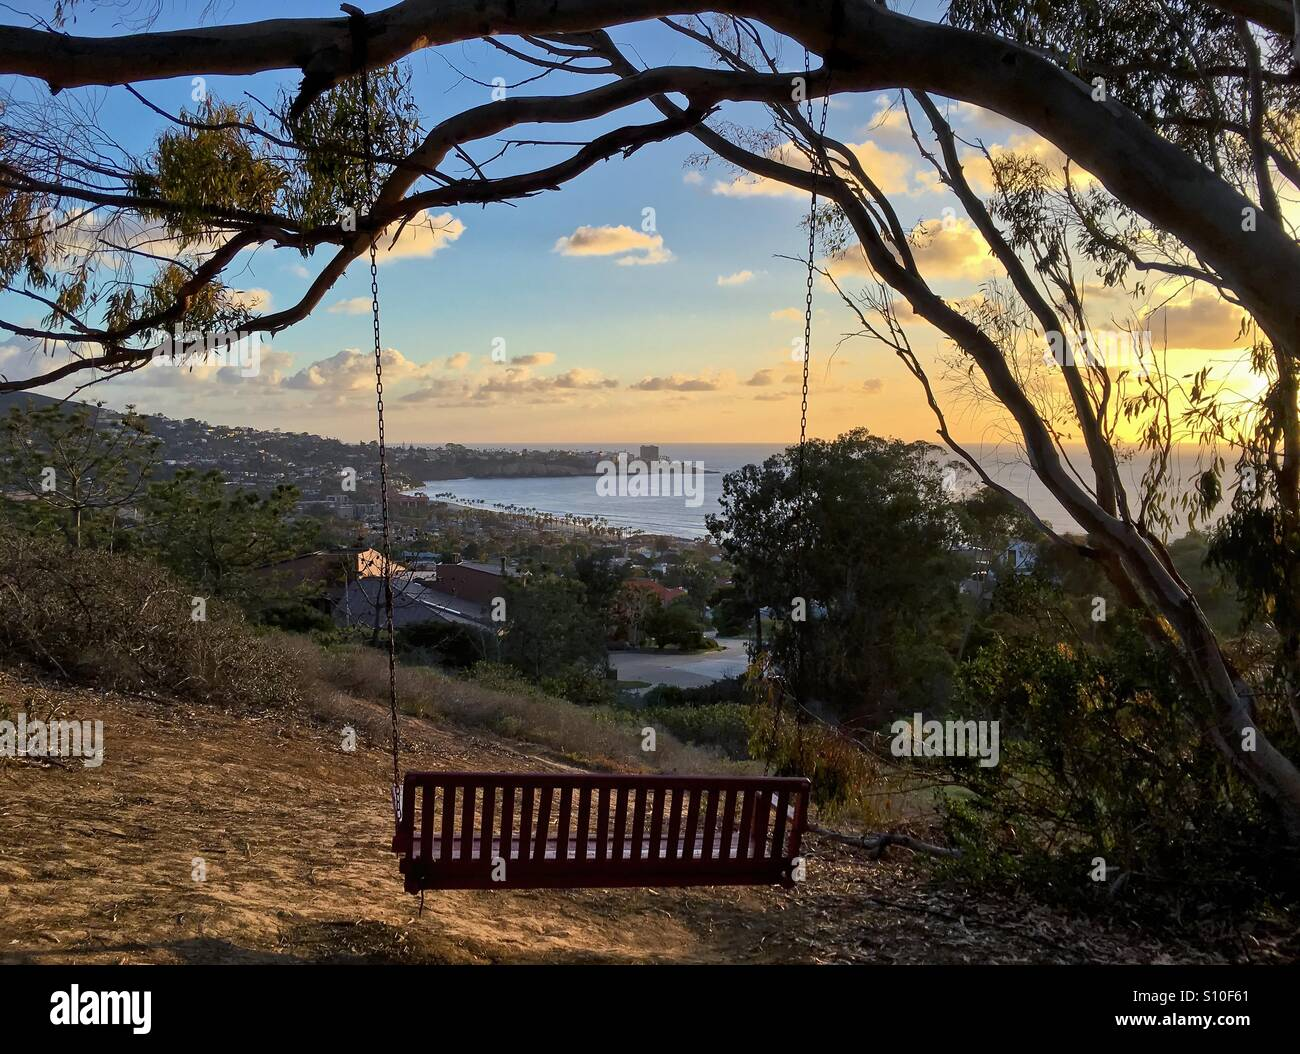 Empty Rustic Wooden Bench Swing Hanging On A Tree With A